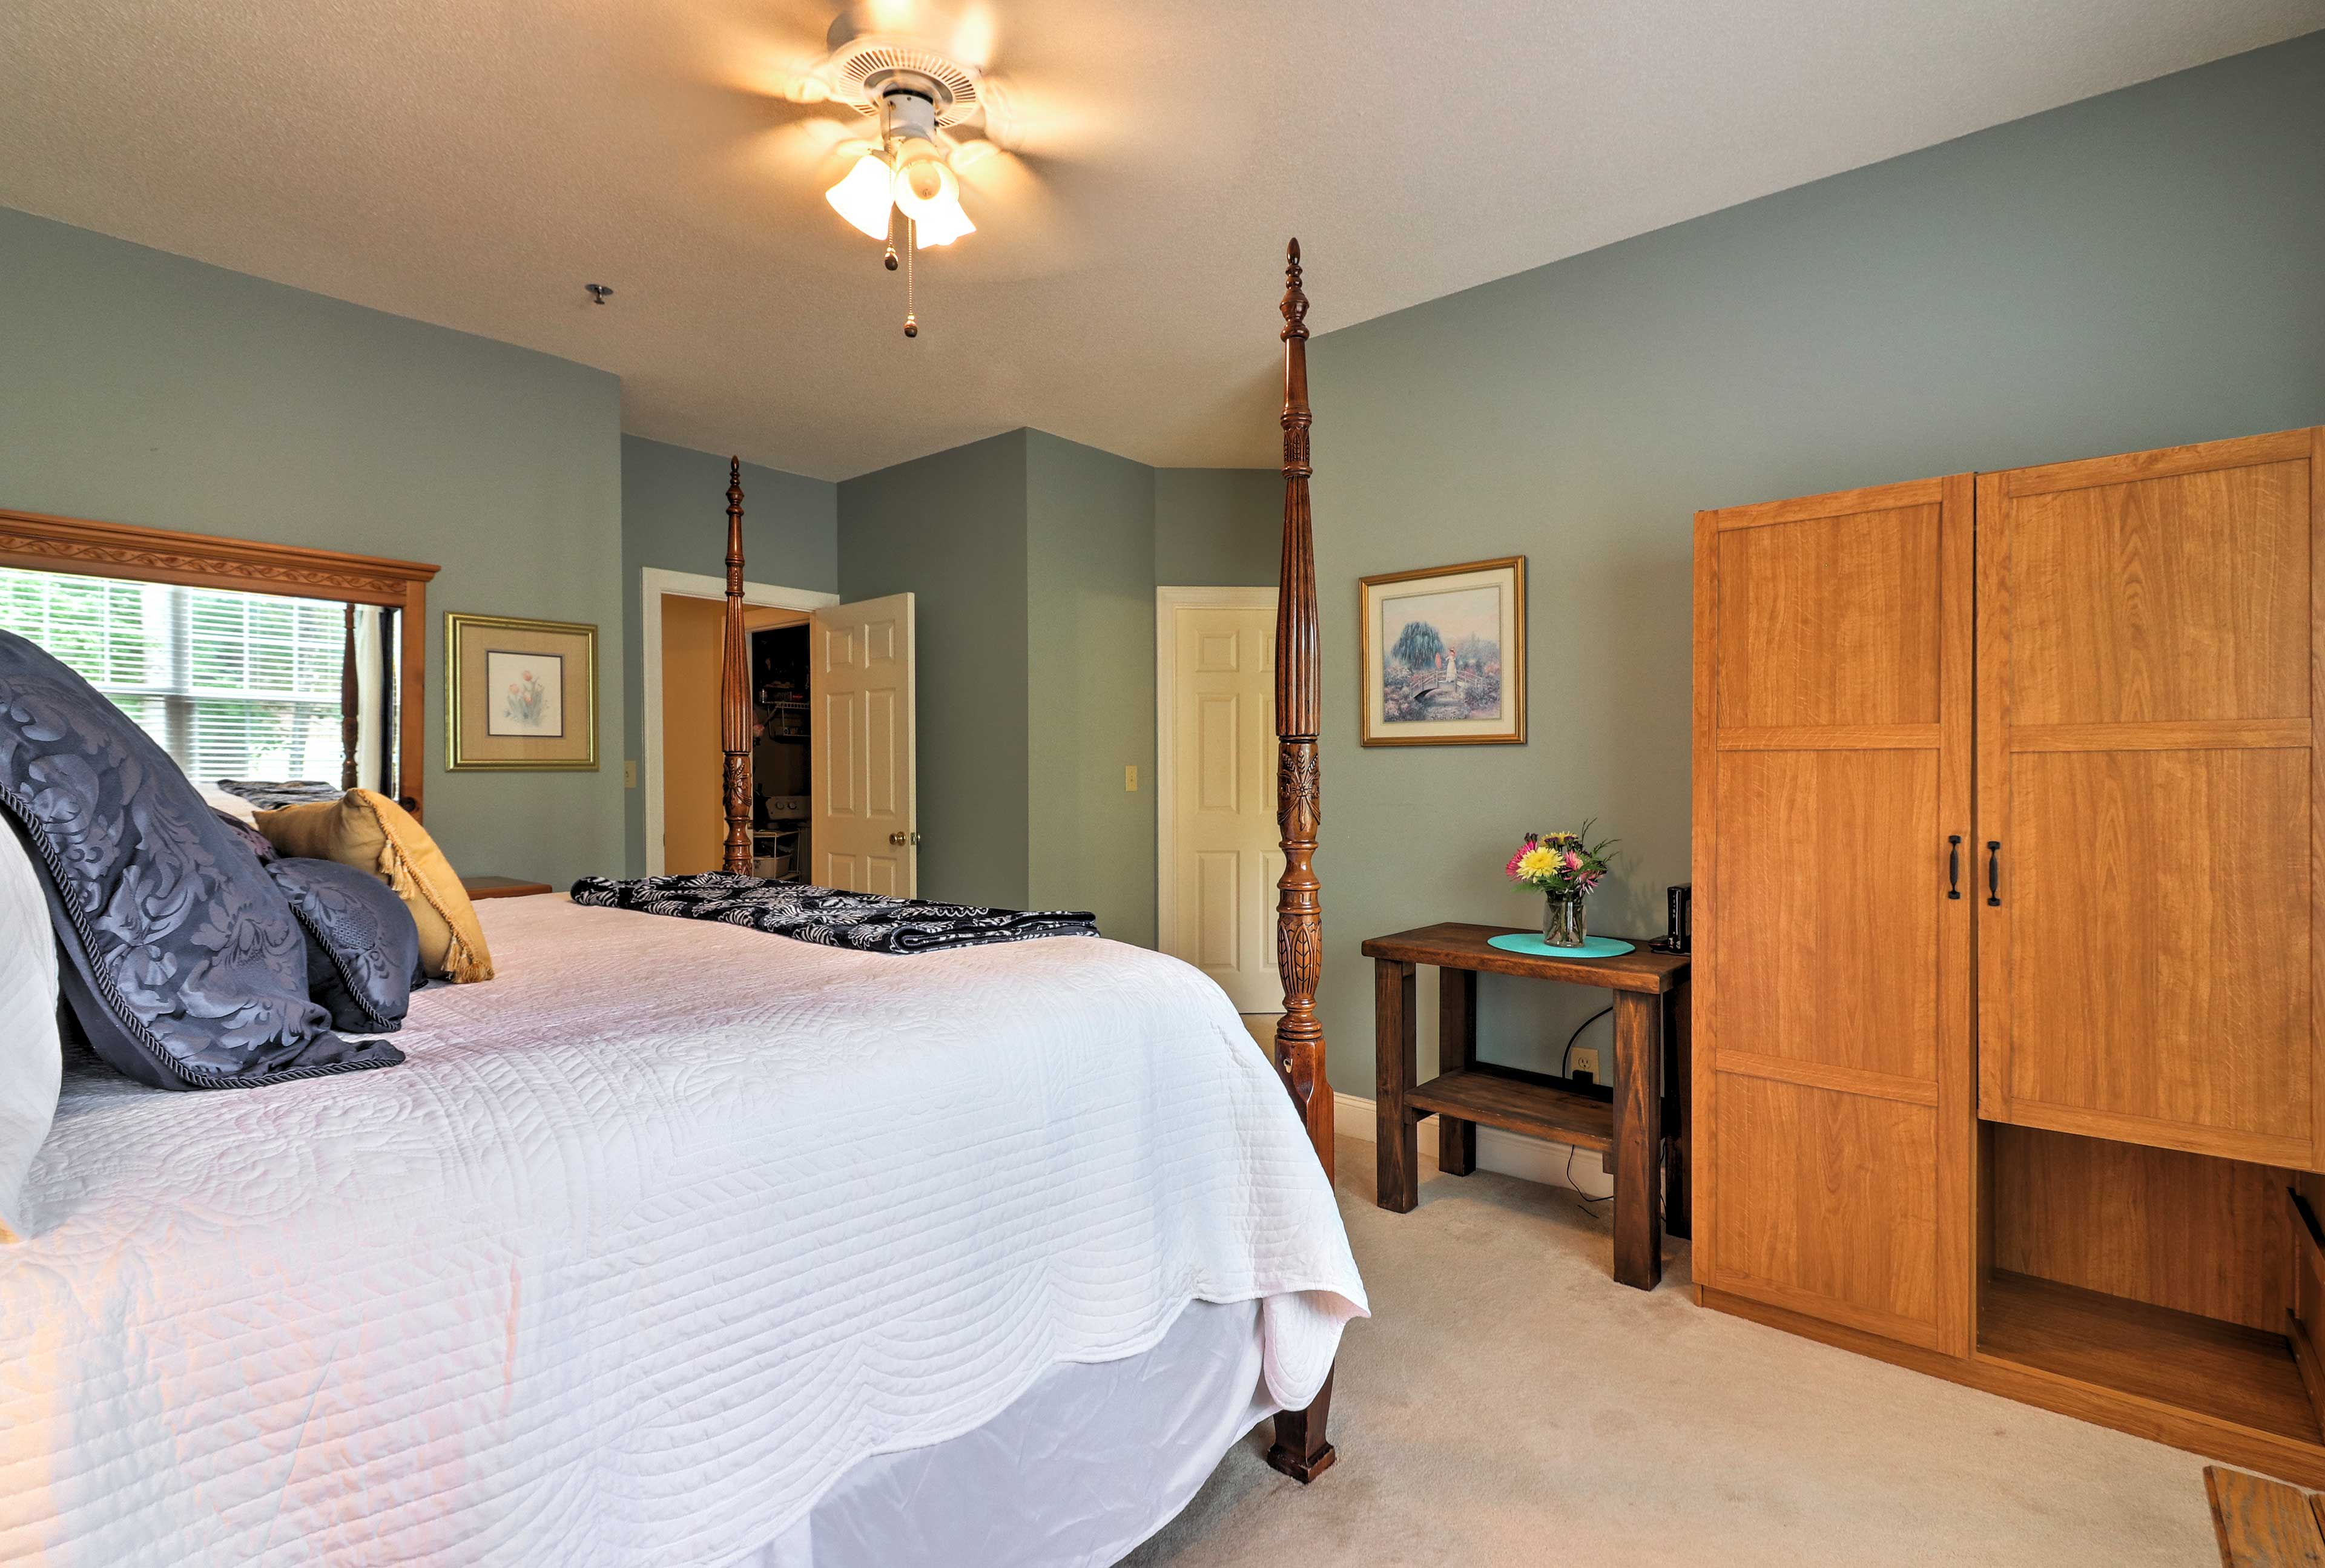 There's a full-sized rollaway bed for additional sleeping in the master bedroom.